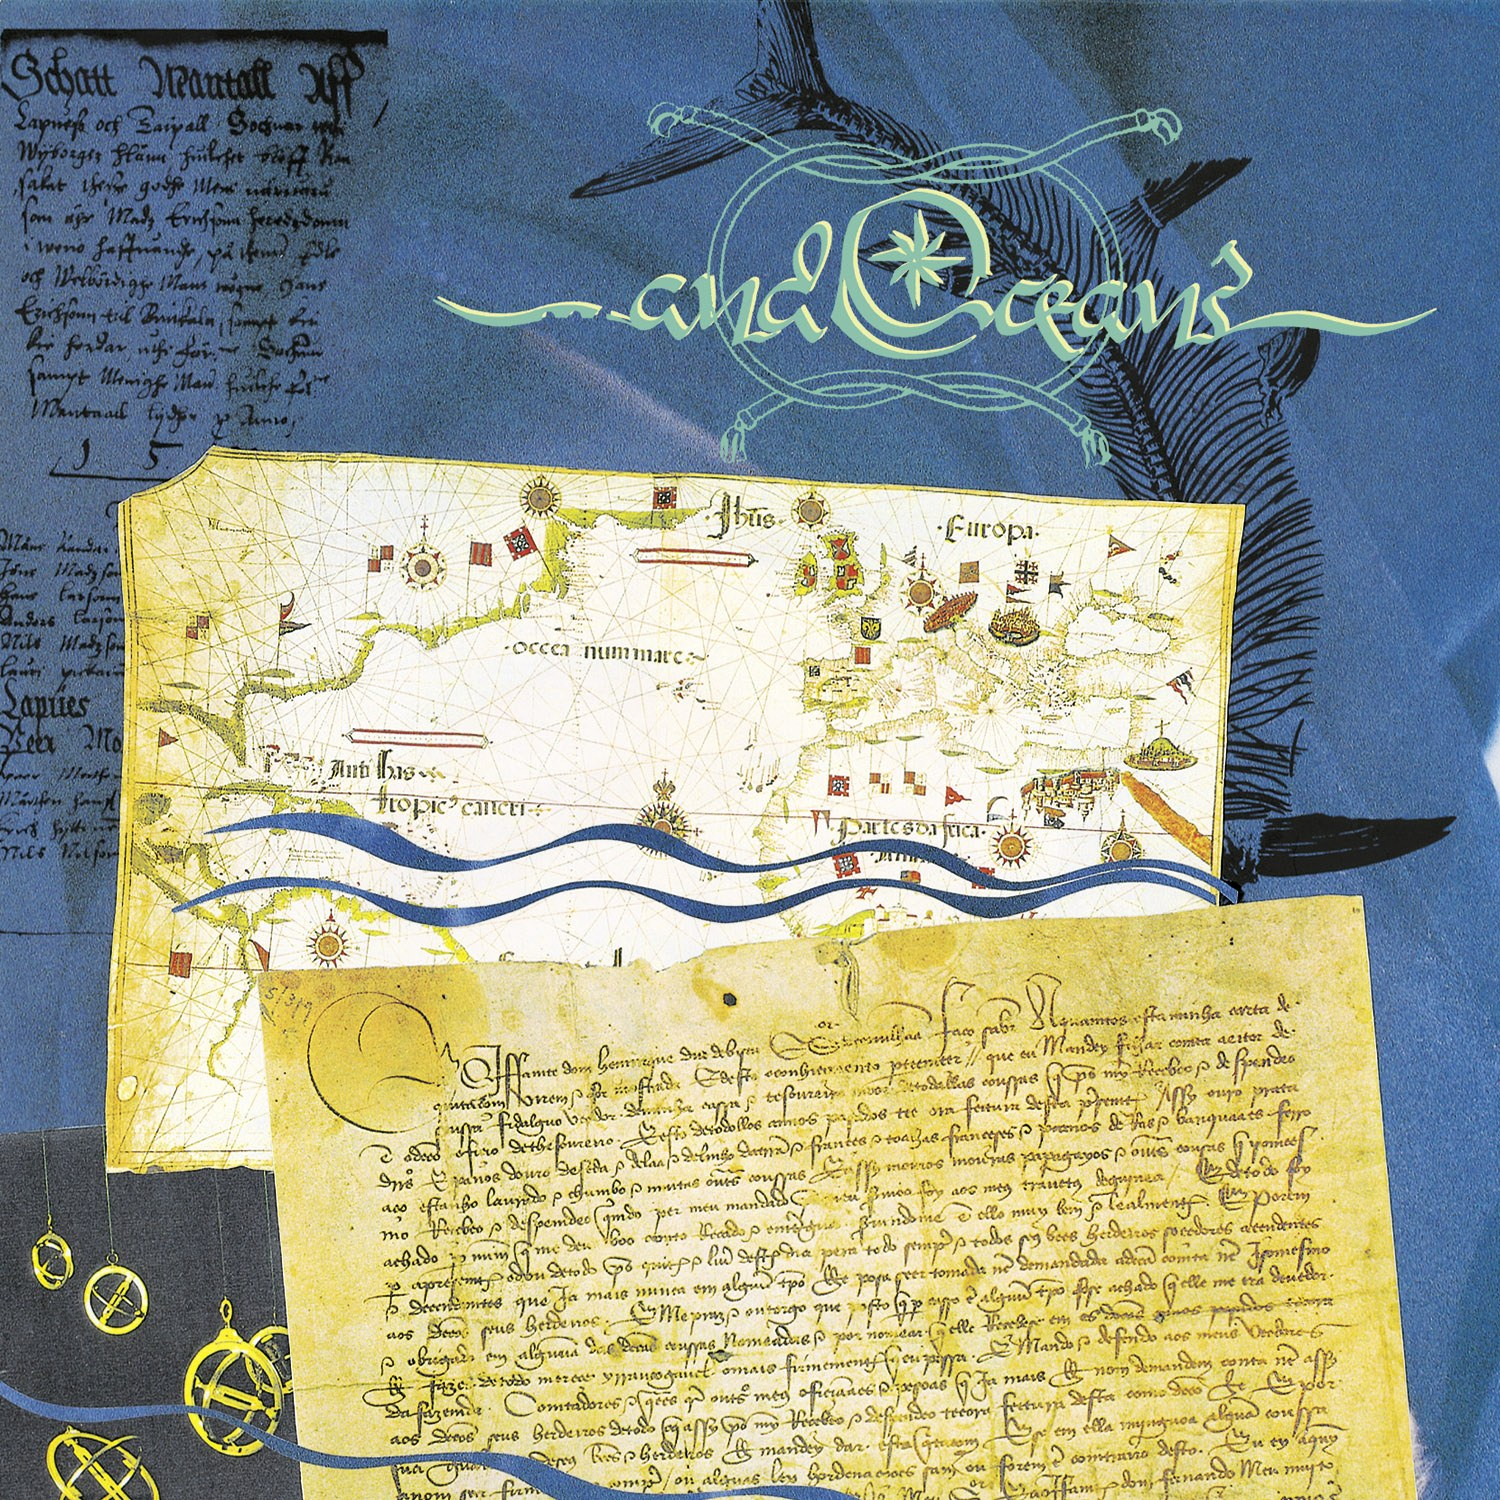 Reviews for ...and Oceans - The Dynamic Gallery of Thoughts